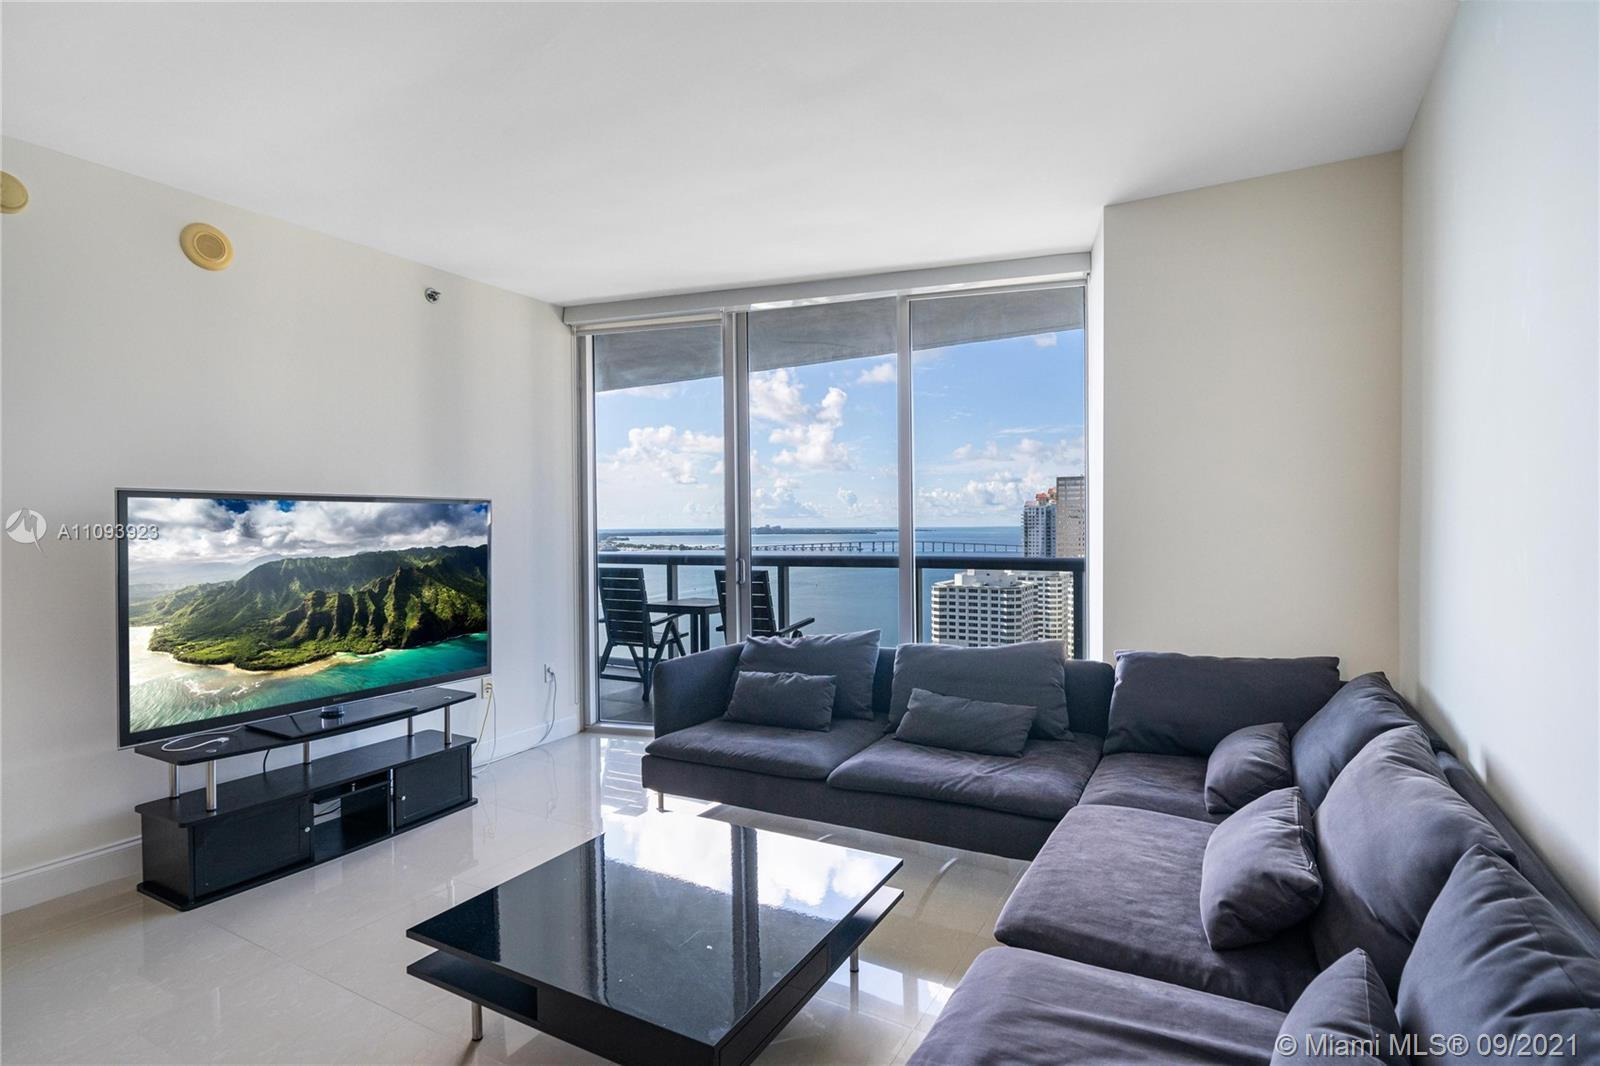 The largest 1 Bedroom 1 Bathroom 1034 SF with the best view of the water and Brickell Key in the Ico